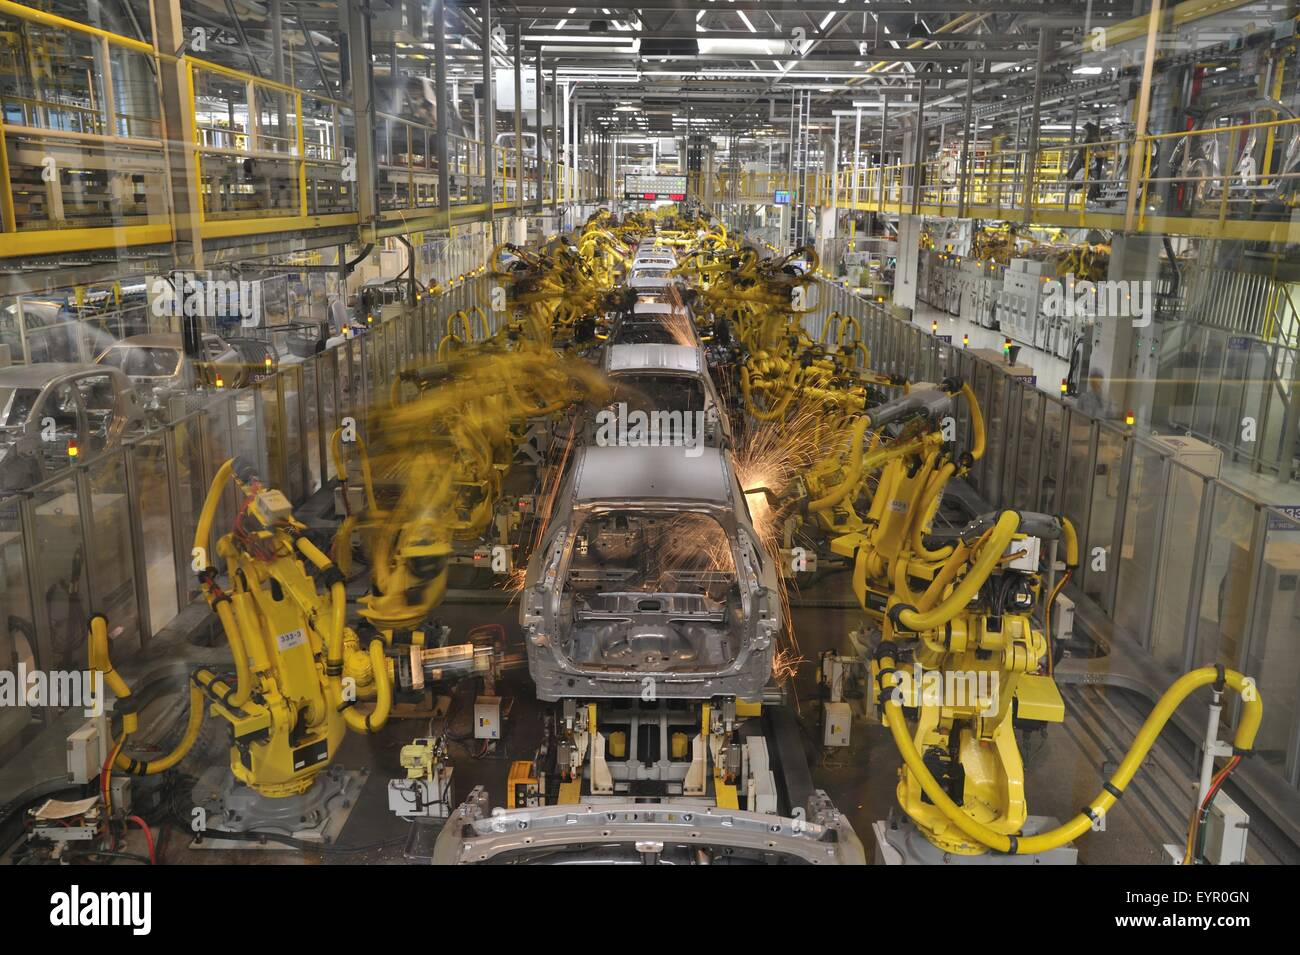 Inside a modern car factory, vehicles and parts move through the production process robots weld bare metal car bodies - Stock Image